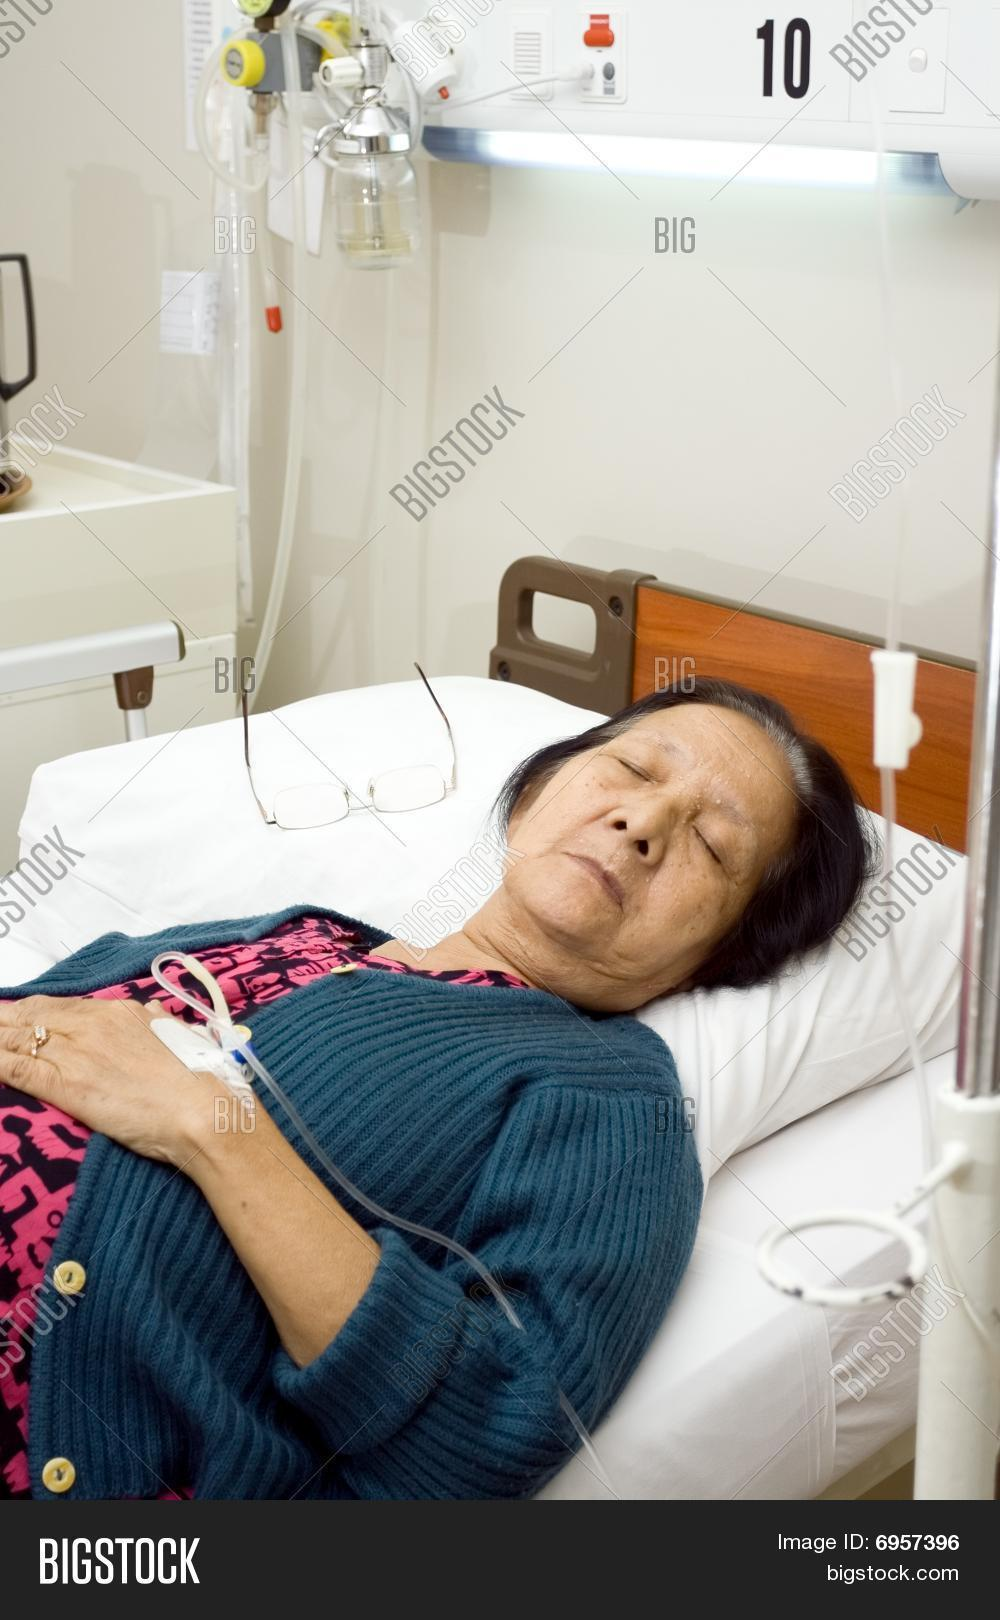 sick woman in hospital bed wwwpixsharkcom images